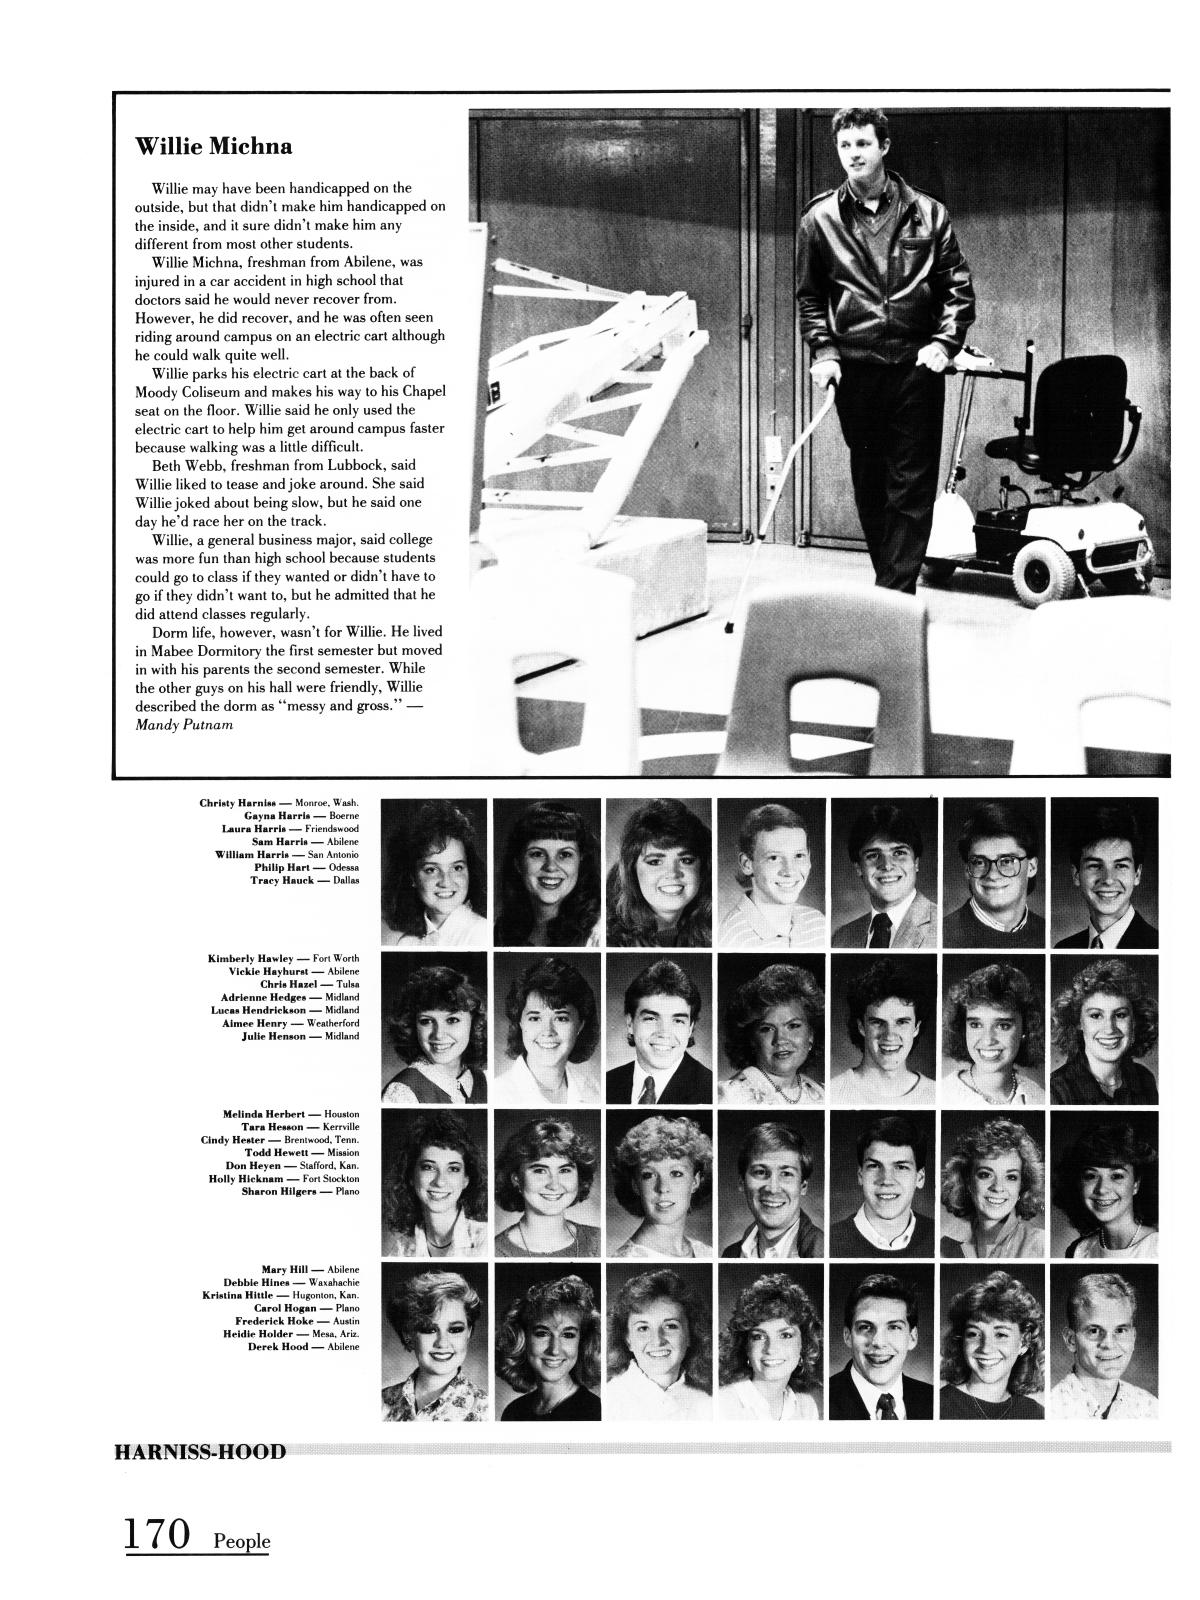 Prickly Pear, Yearbook of Abilene Christian University, 1987 - Page